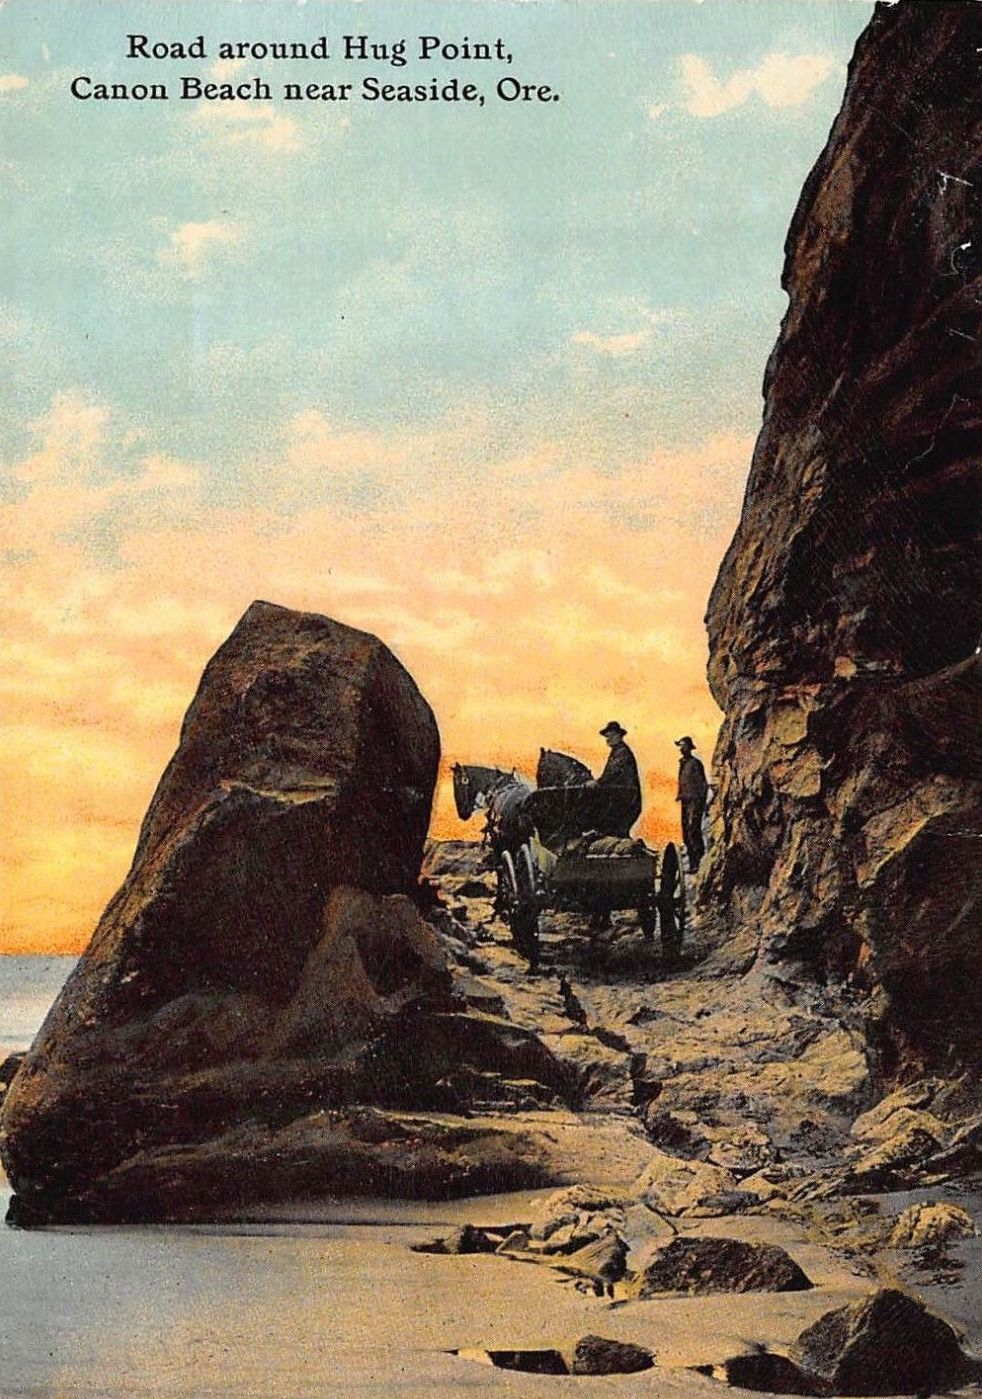 An early 1900 postcard of the old road blasted into the rock at Hug Point